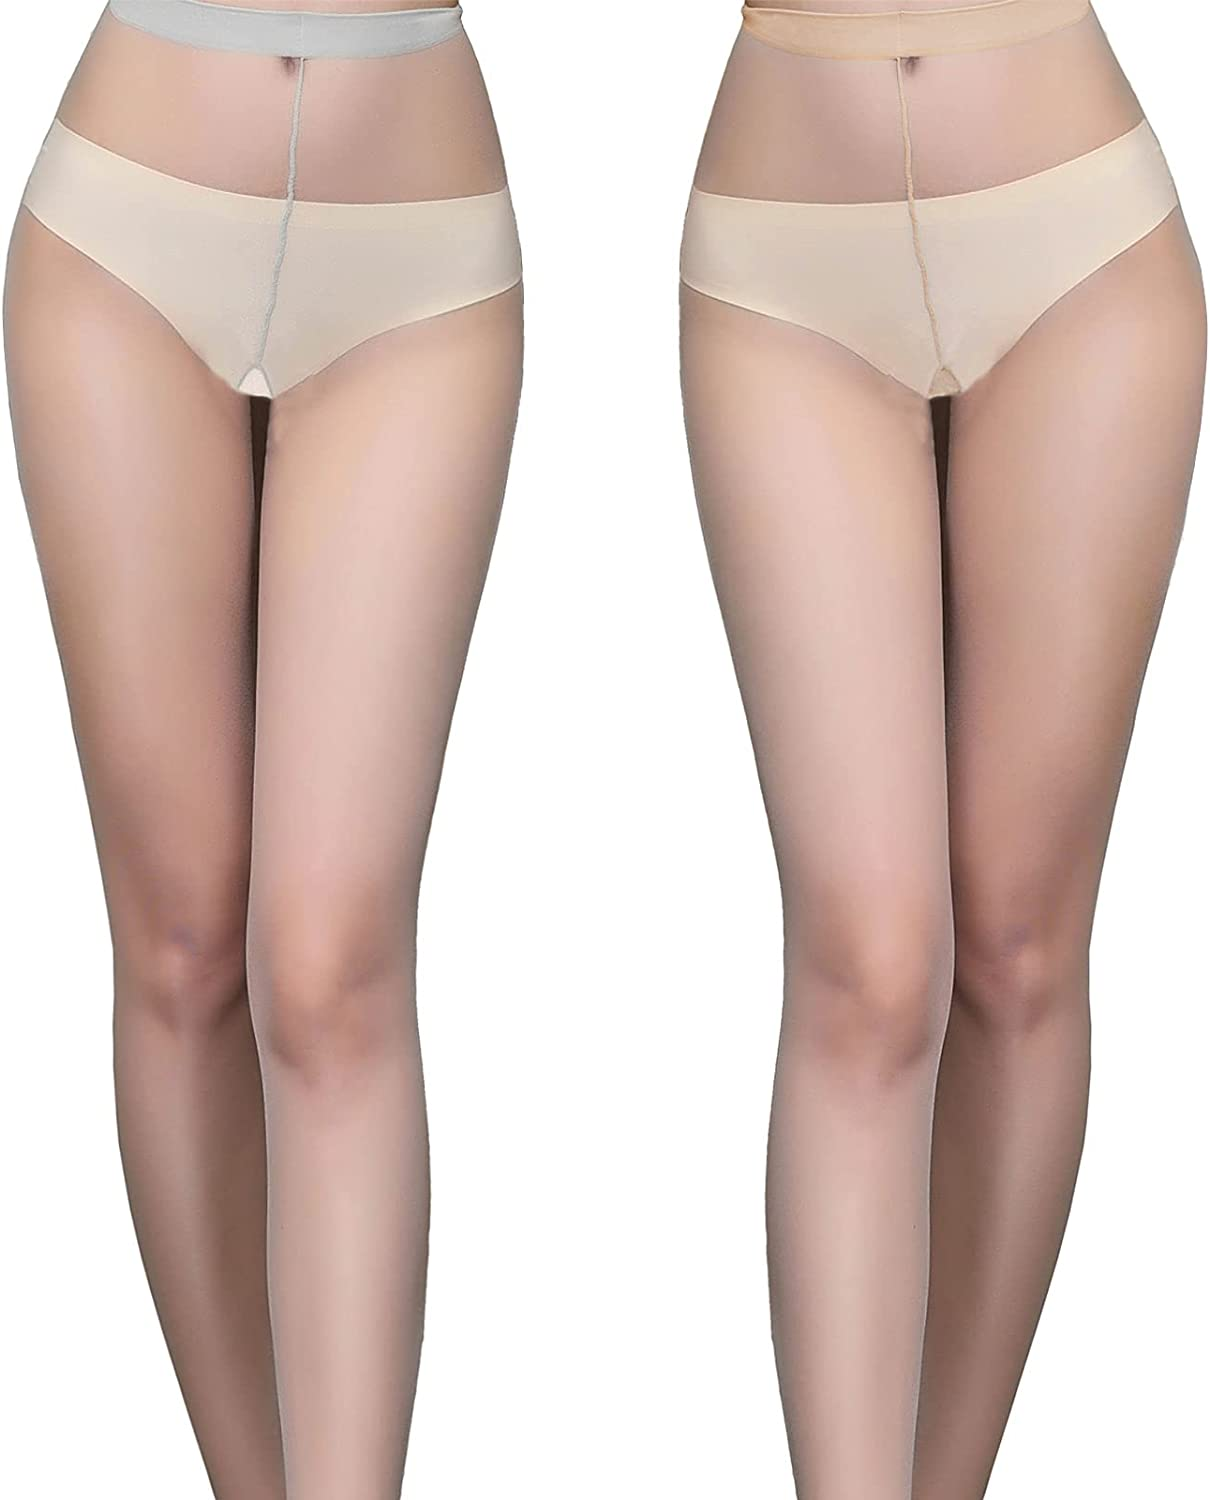 Womens High Waist Control Top Slimming Sexy Pantyhose Thigh High Stockings with Fake Garter Belt and Panty